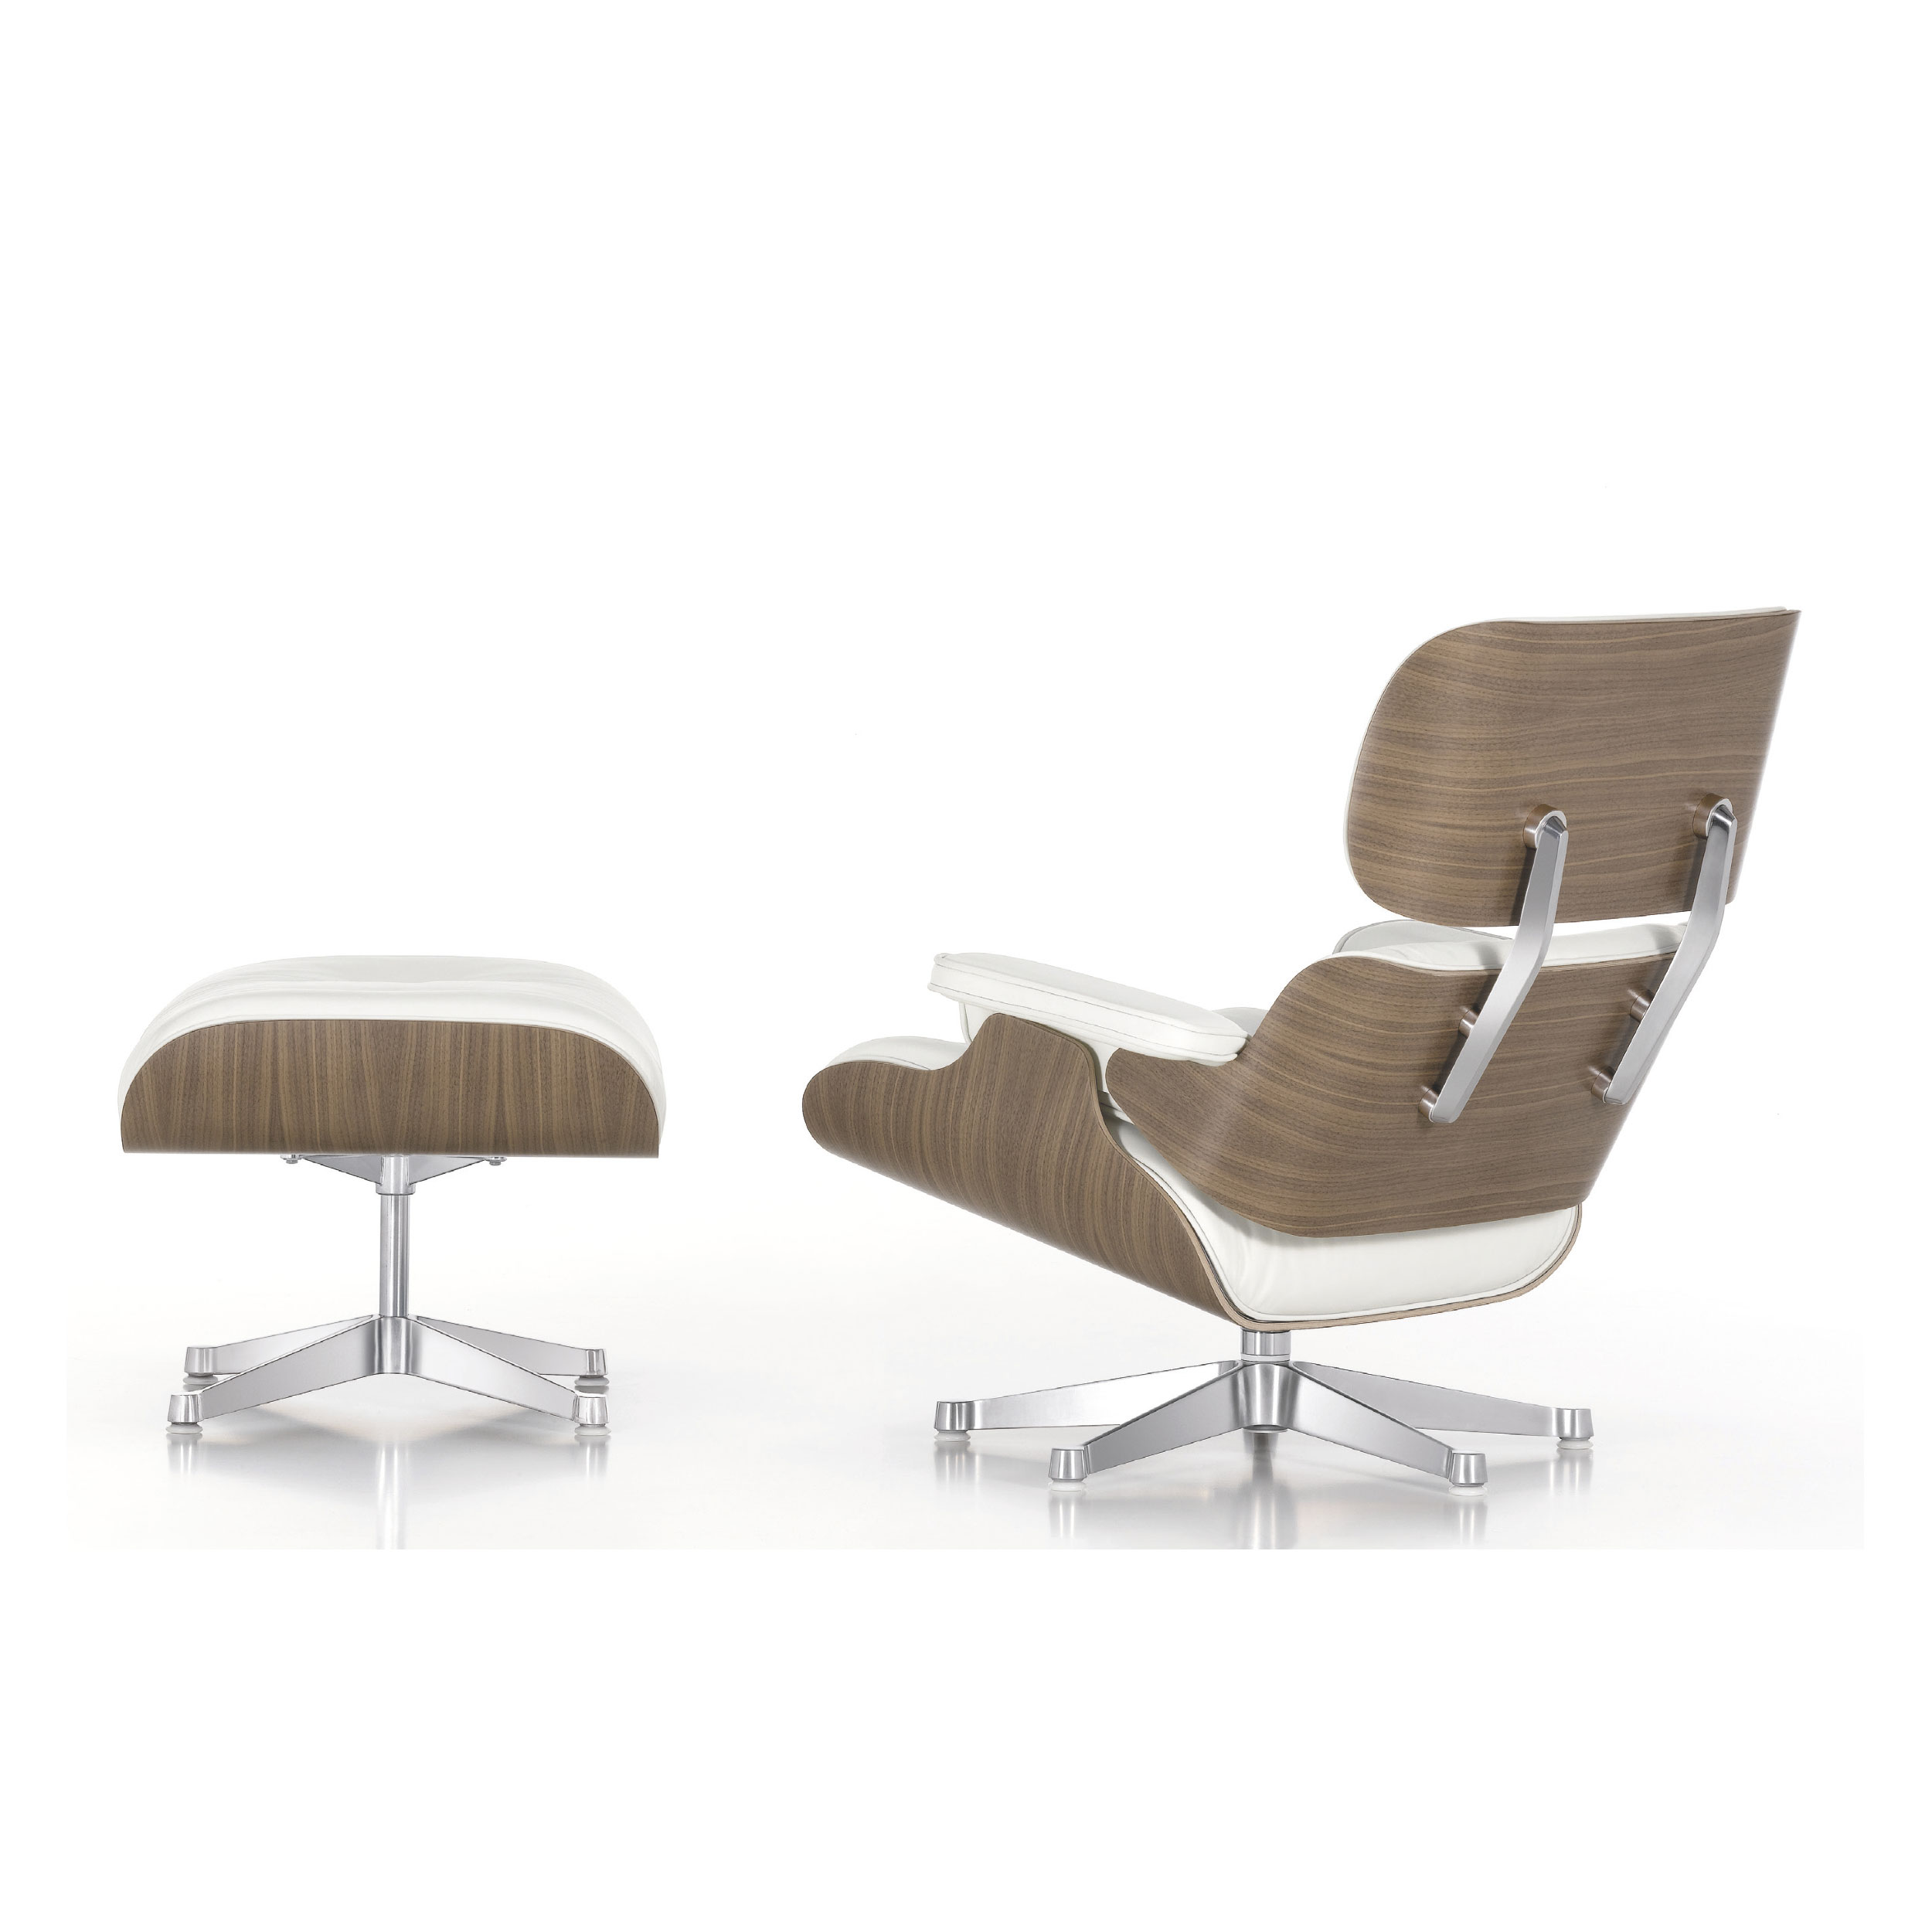 Furniture witching eames white lounge chair ottoman for for Beautiful furniture